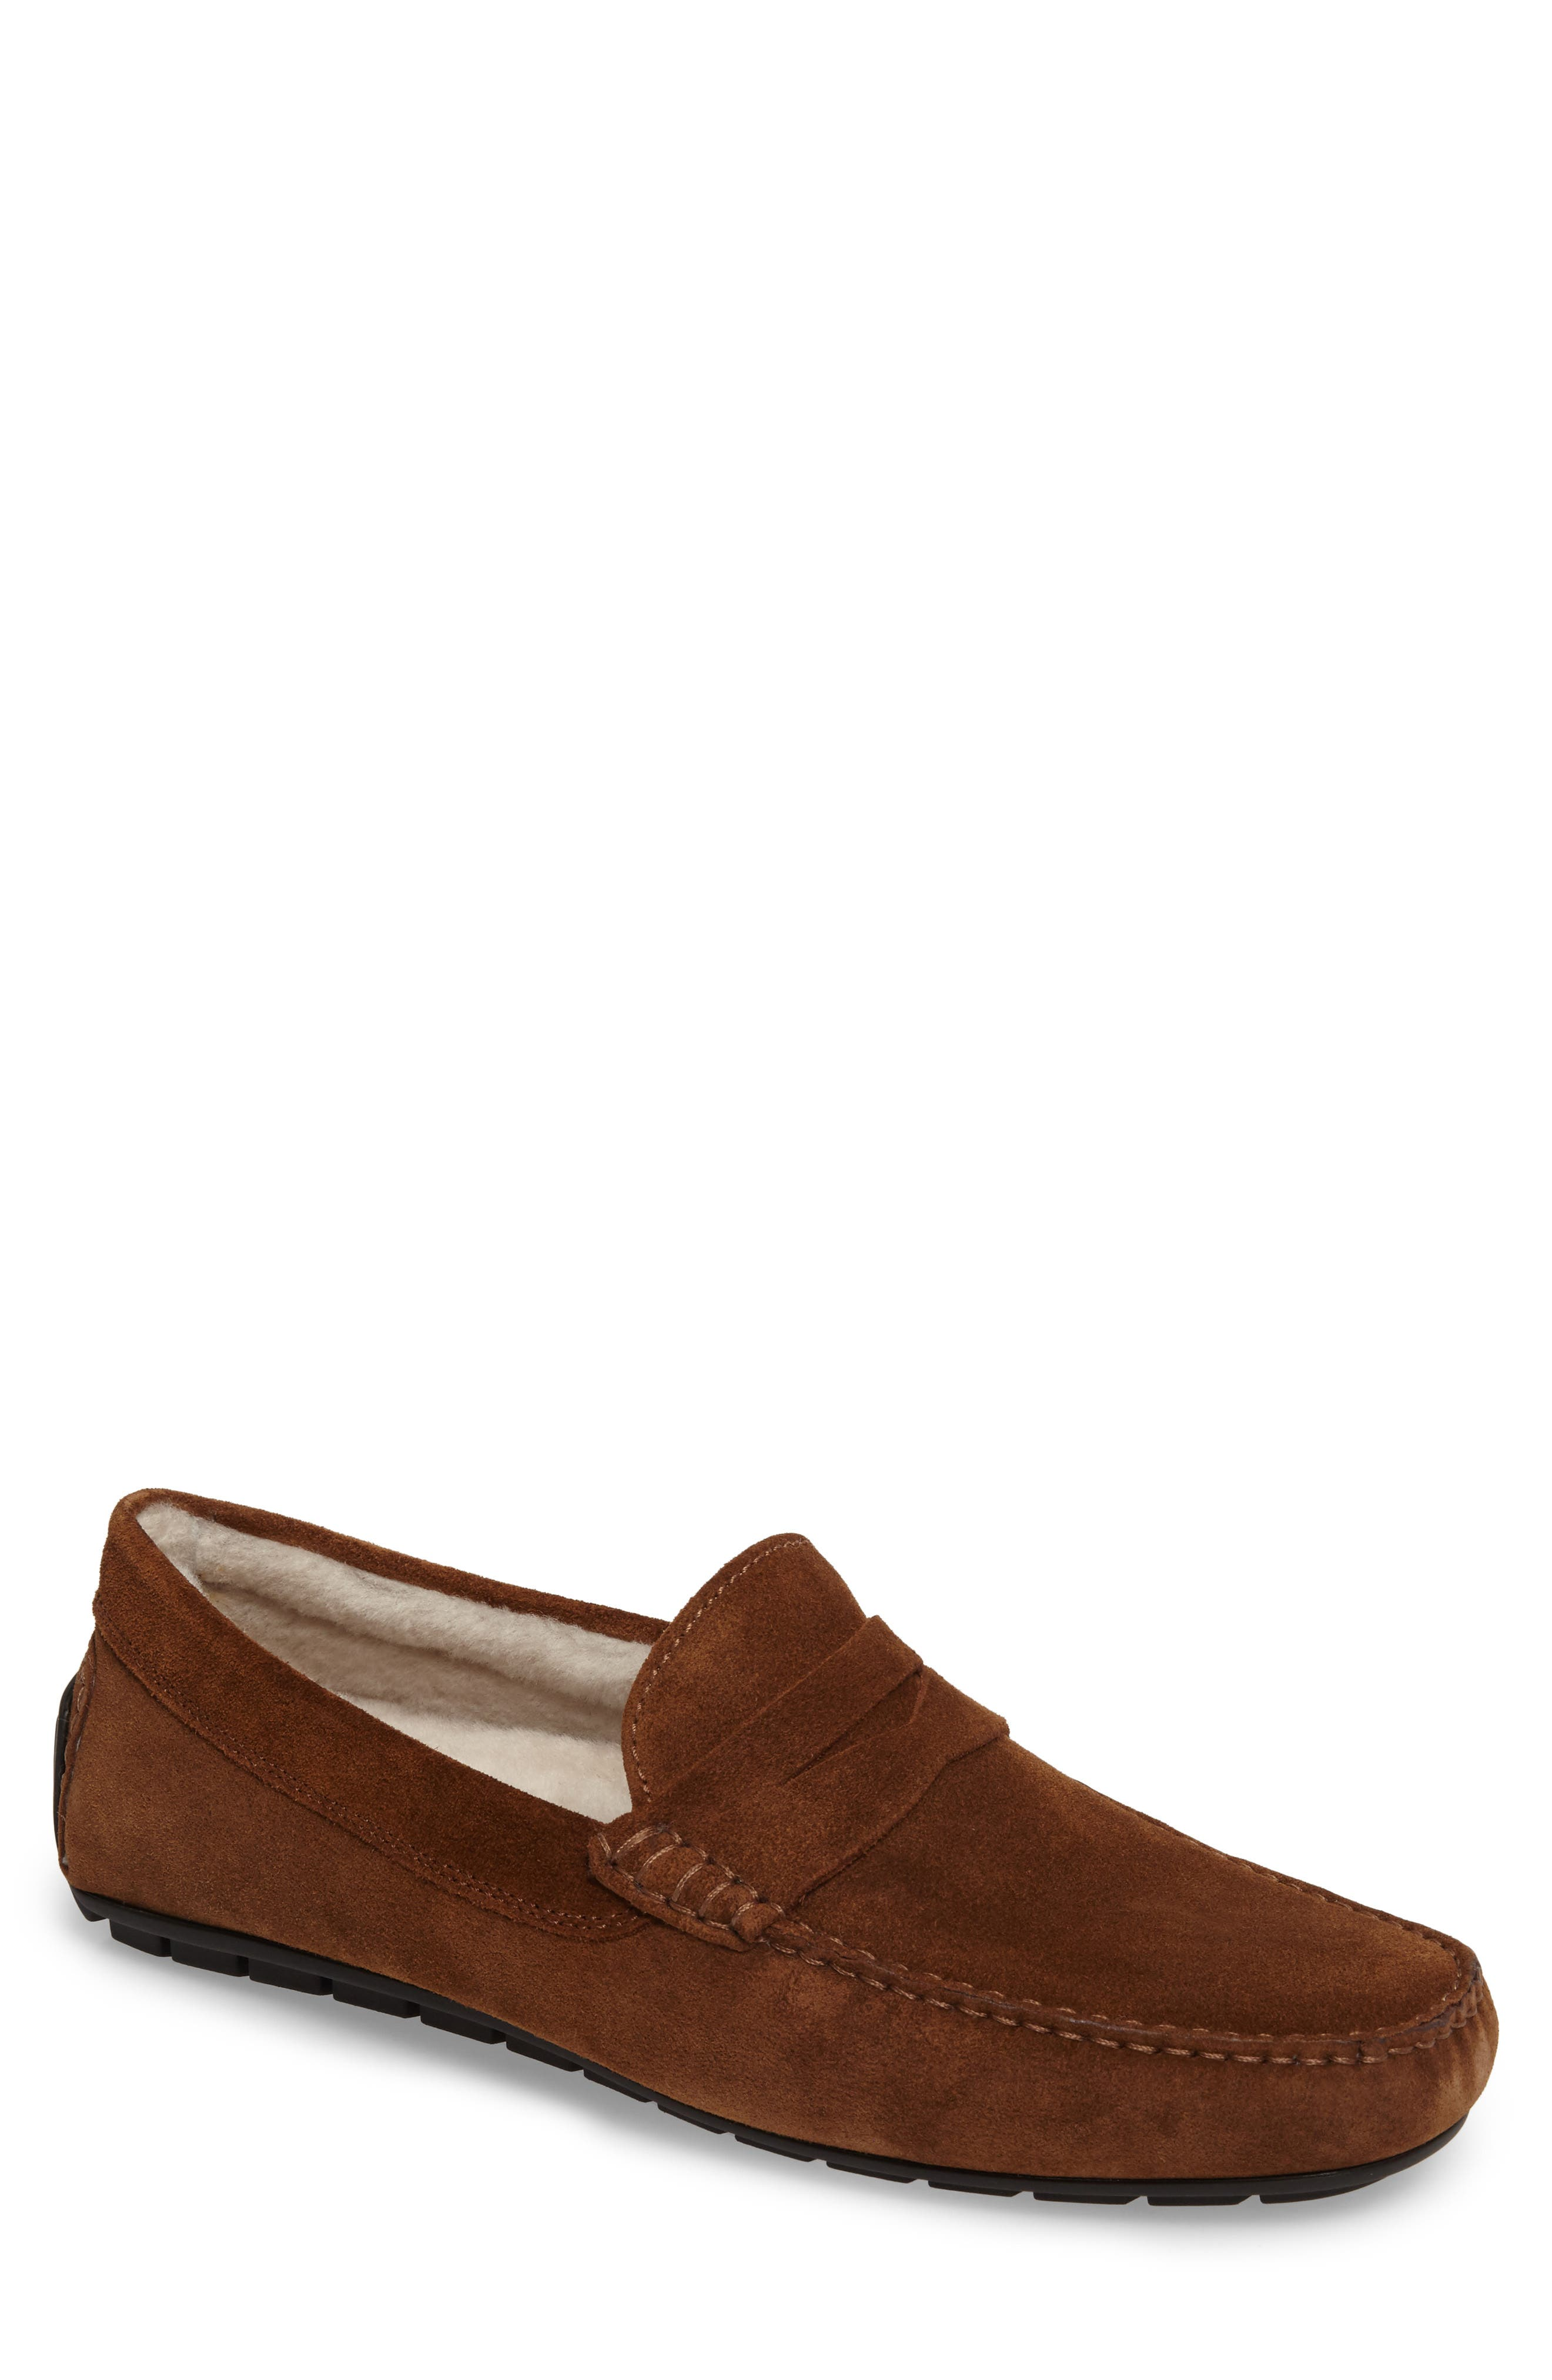 Norse Penny Loafer with Genuine Shearling,                             Main thumbnail 1, color,                             Brown/ Brown Suede Leather